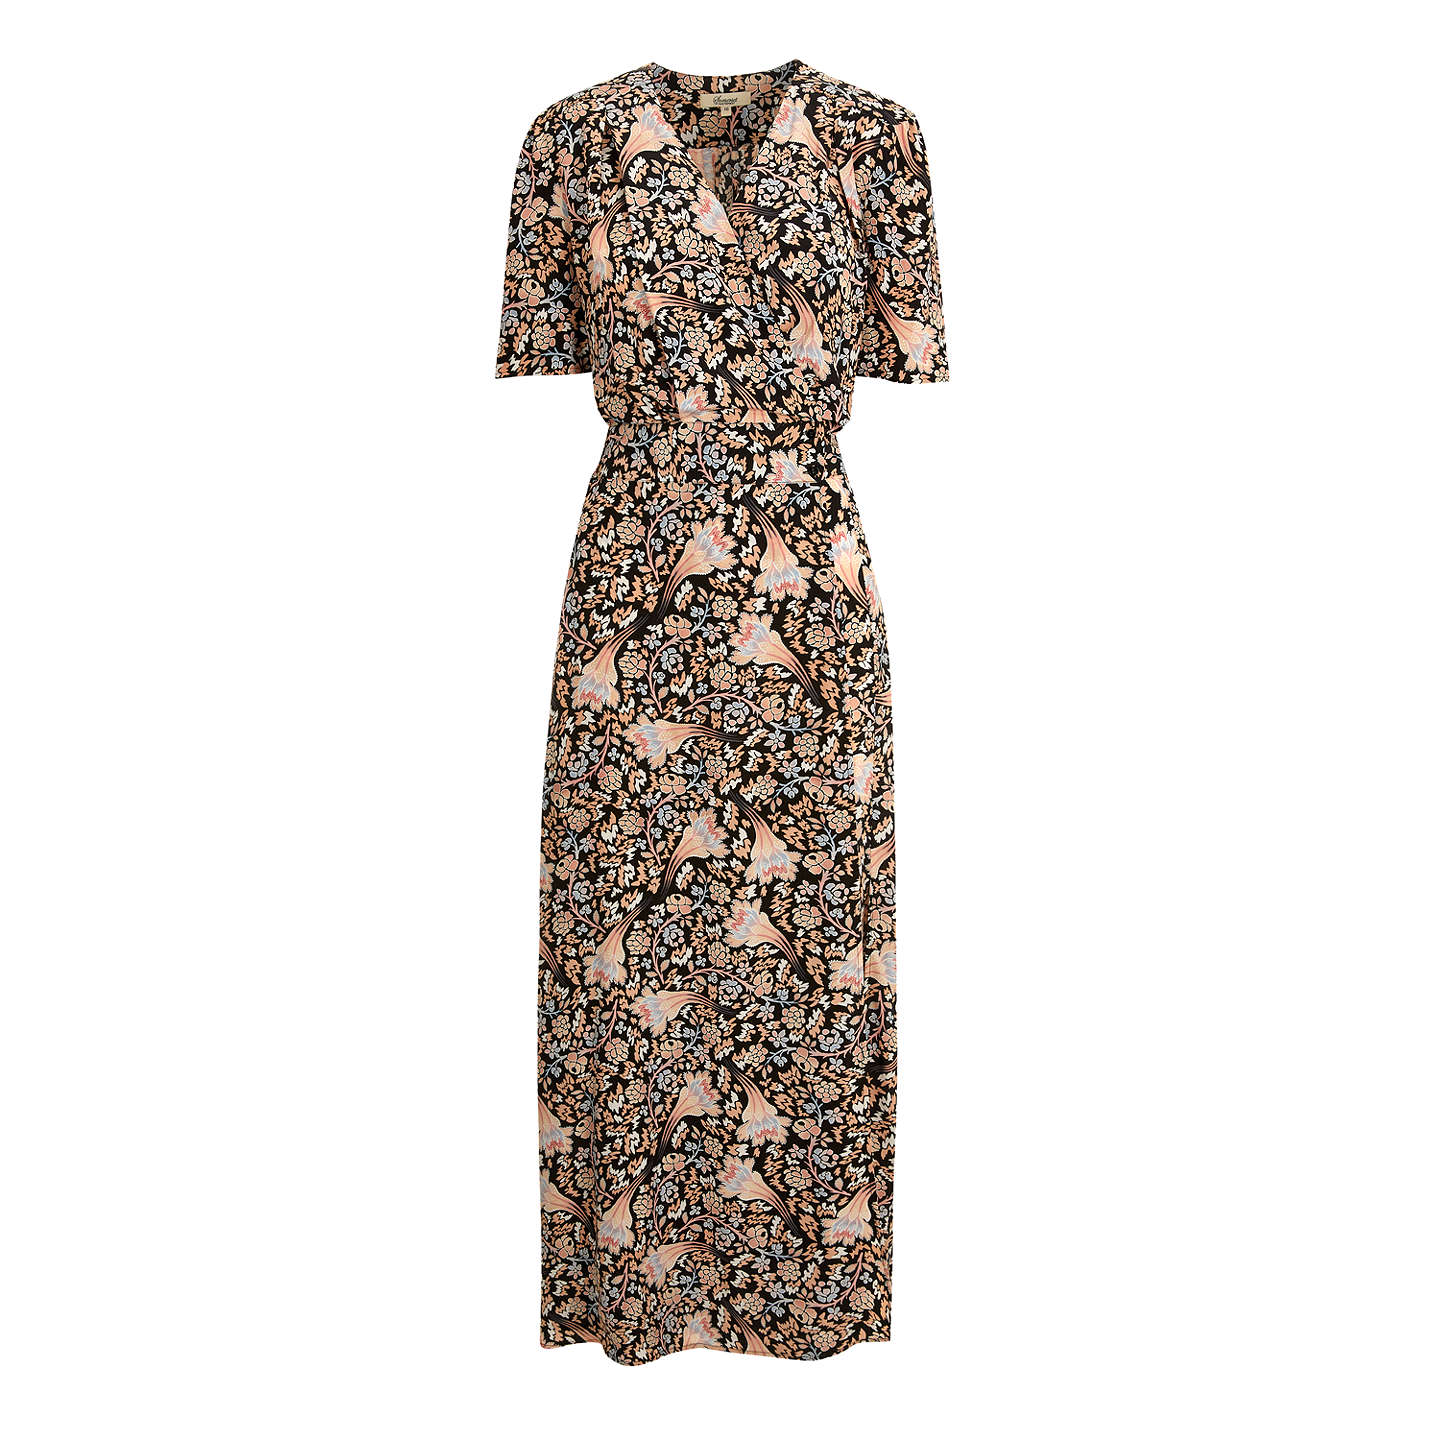 BuySomerset by Alice Temperley Fireflower Maxi Dress, Black, 6 Online at johnlewis.com